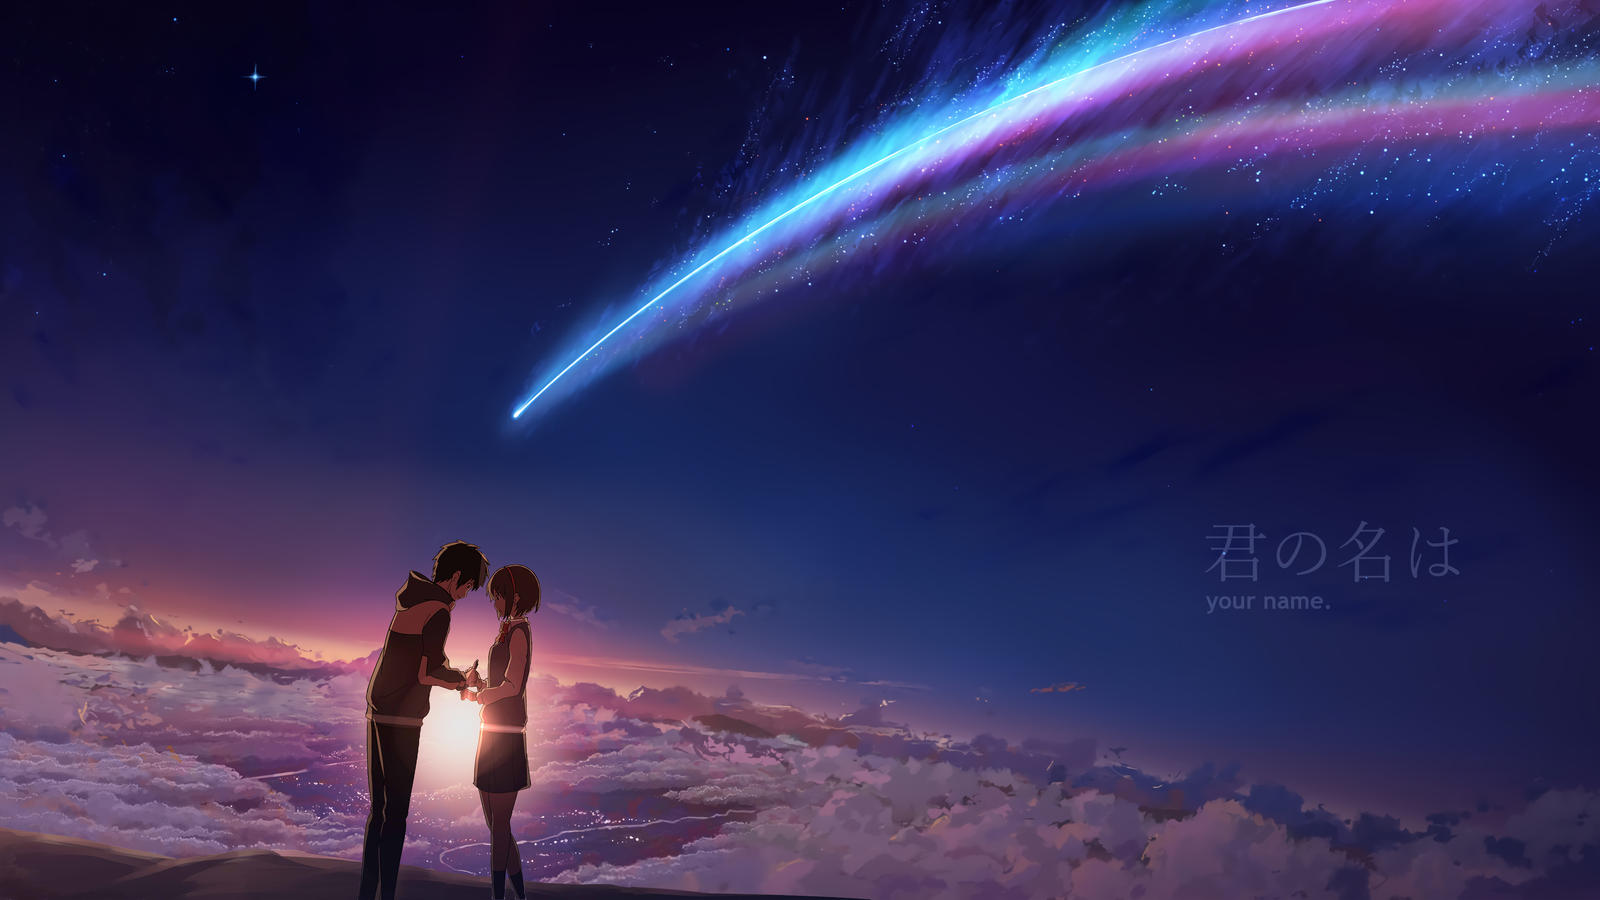 Kimi No Na Wa (Your Name) by AssassinWarrior on Deviant Art